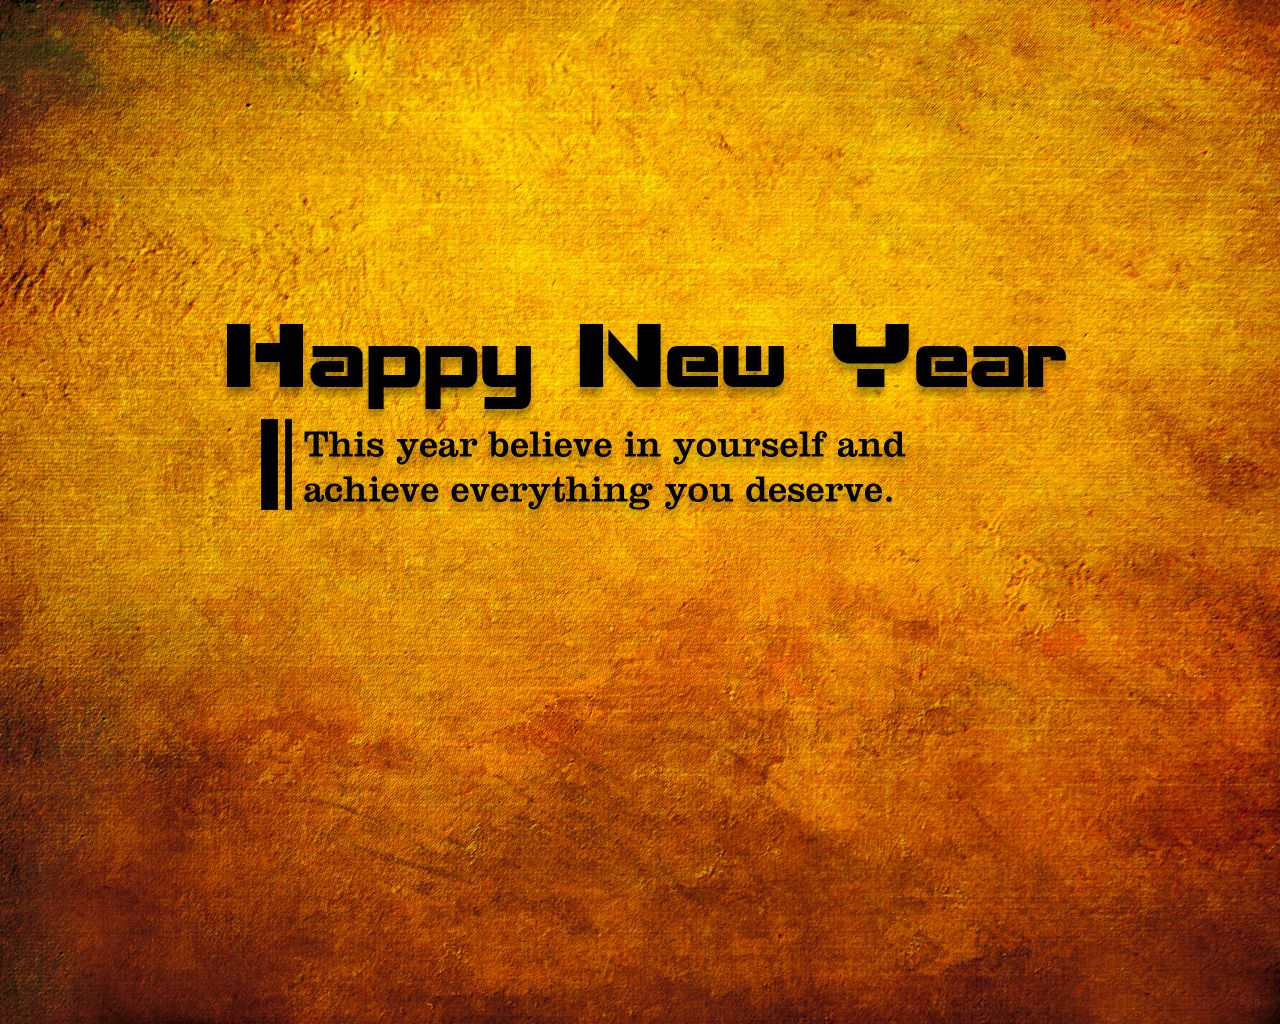 Happy New Year Wishes Quotes Happy New Year 2012 Wishes Quotes